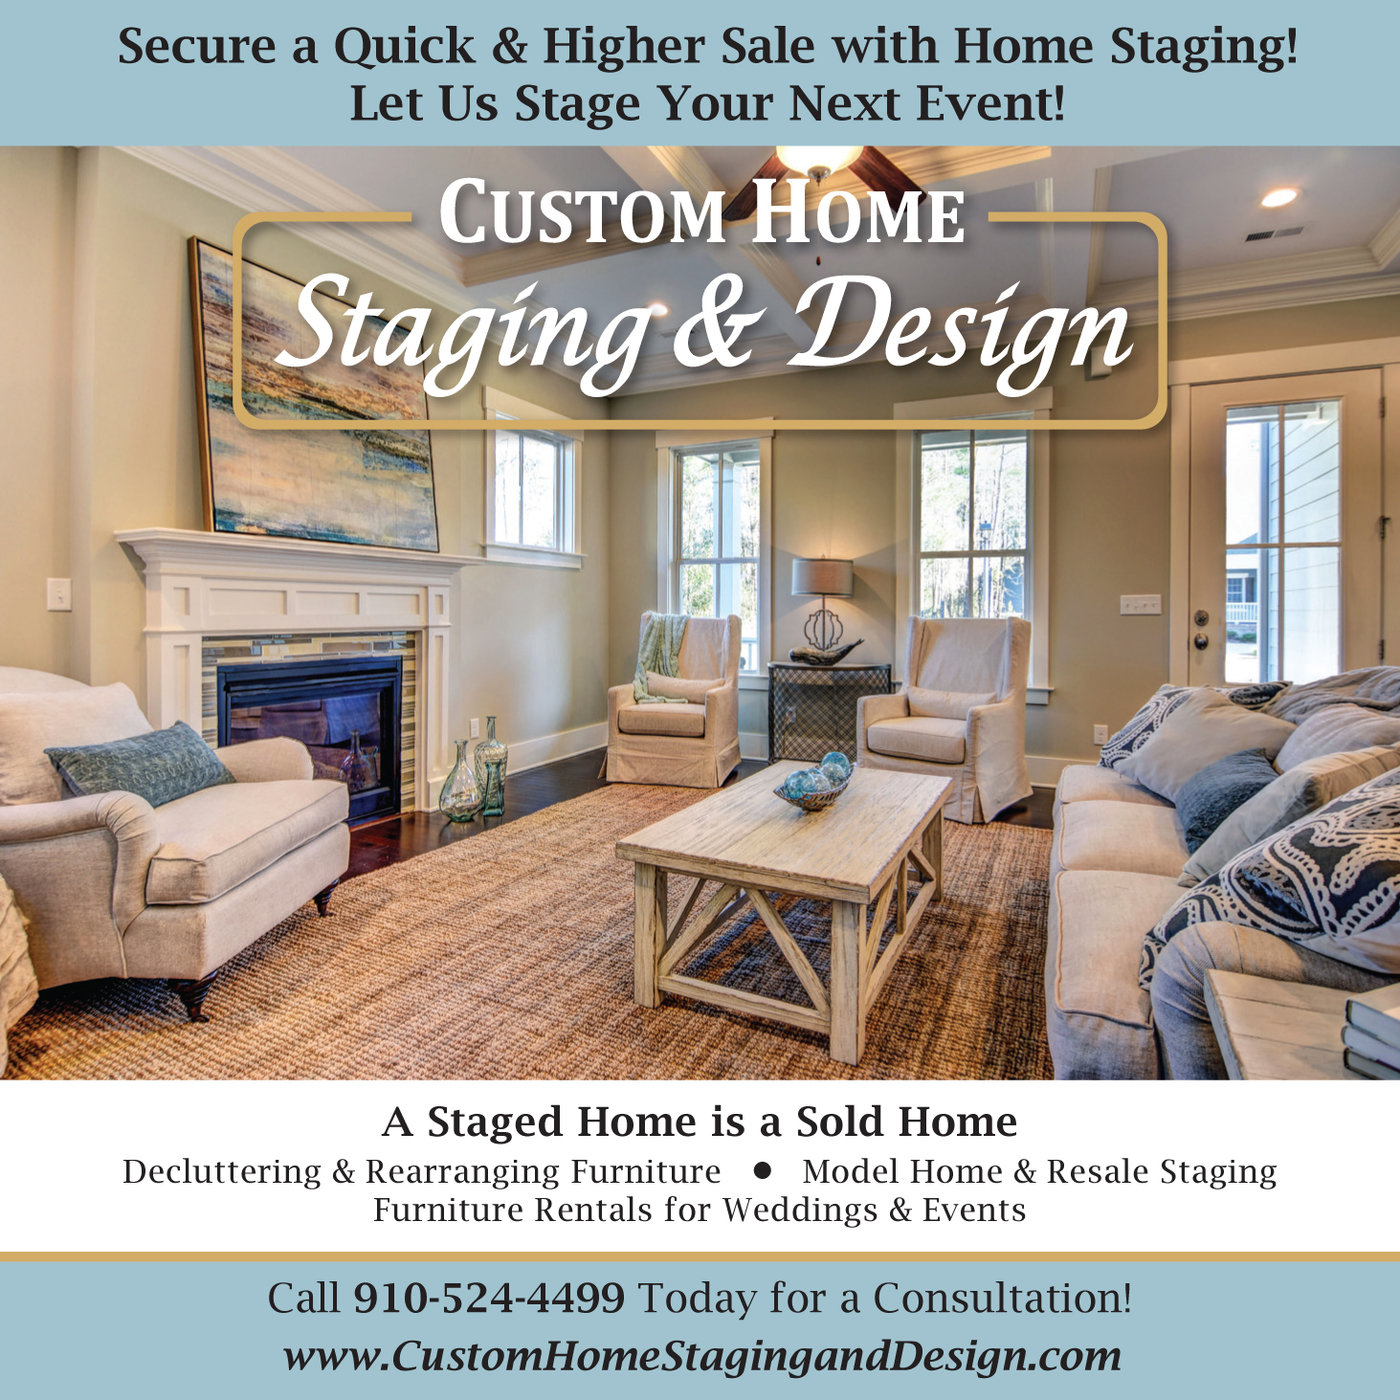 Home Staging Ad By Shanna Thomson At Coroflotcom